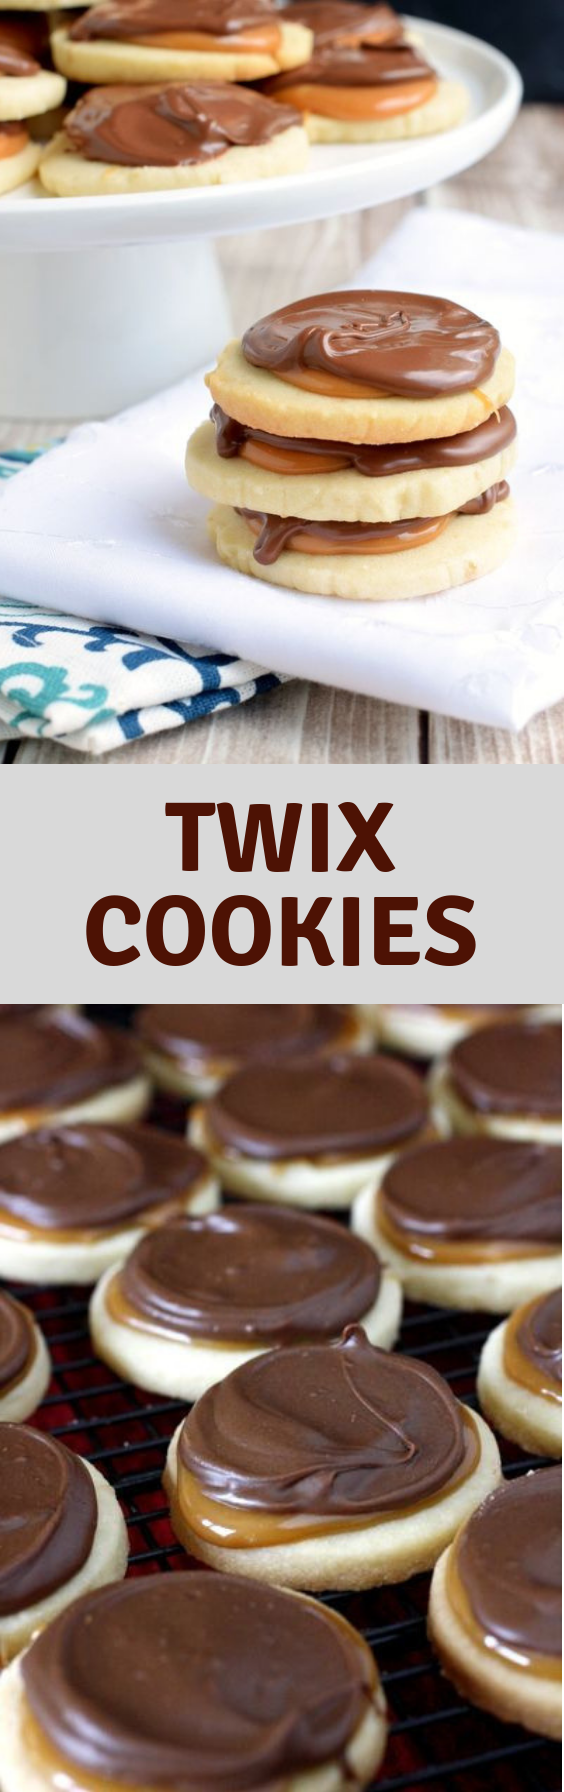 Twix Cookies #twixcookies